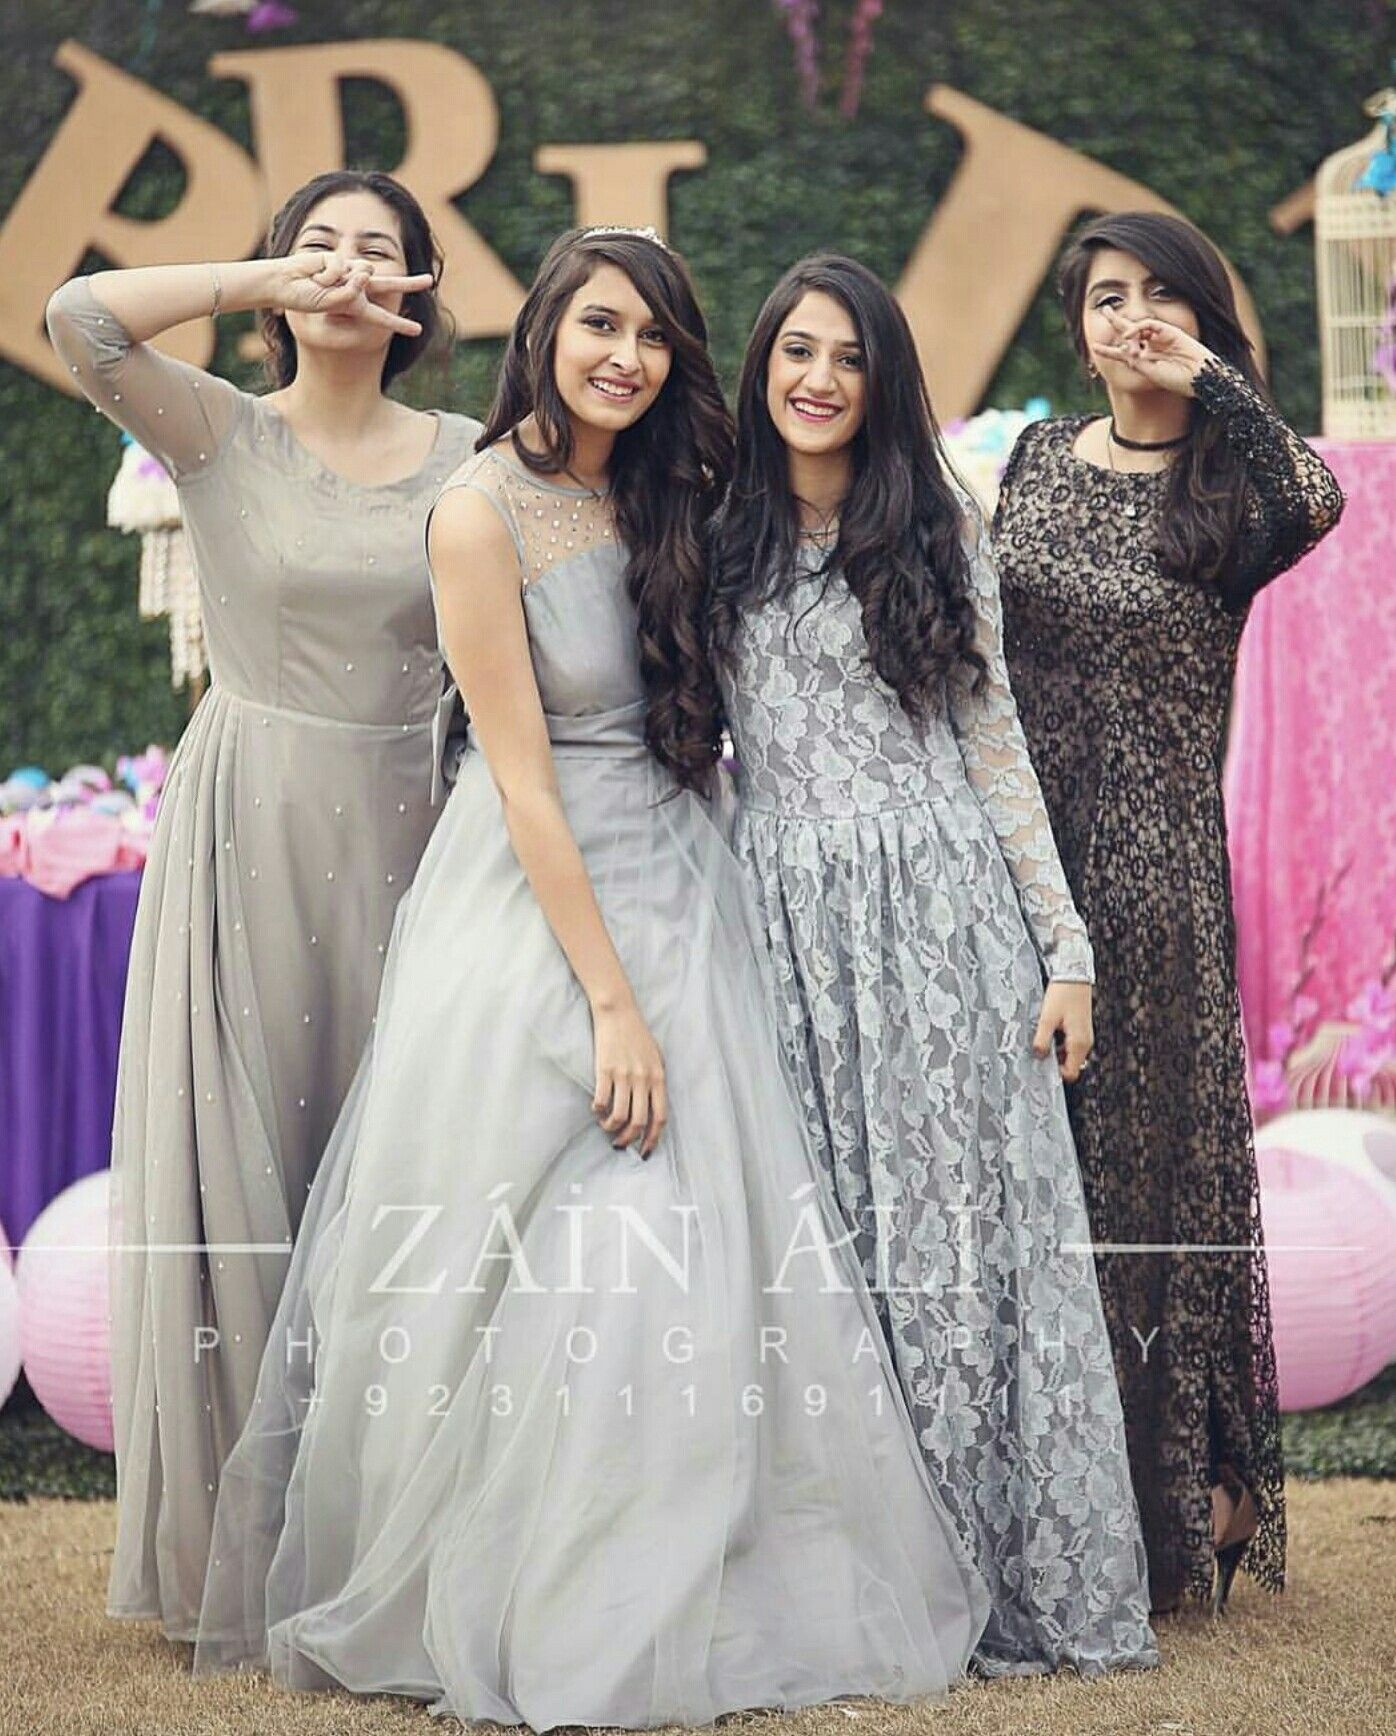 Pin By Kunju On Pakistani Formals Dress Dats Rooock Pakistani Wedding Outfits Bridal Party Poses Wedding Dresses For Girls